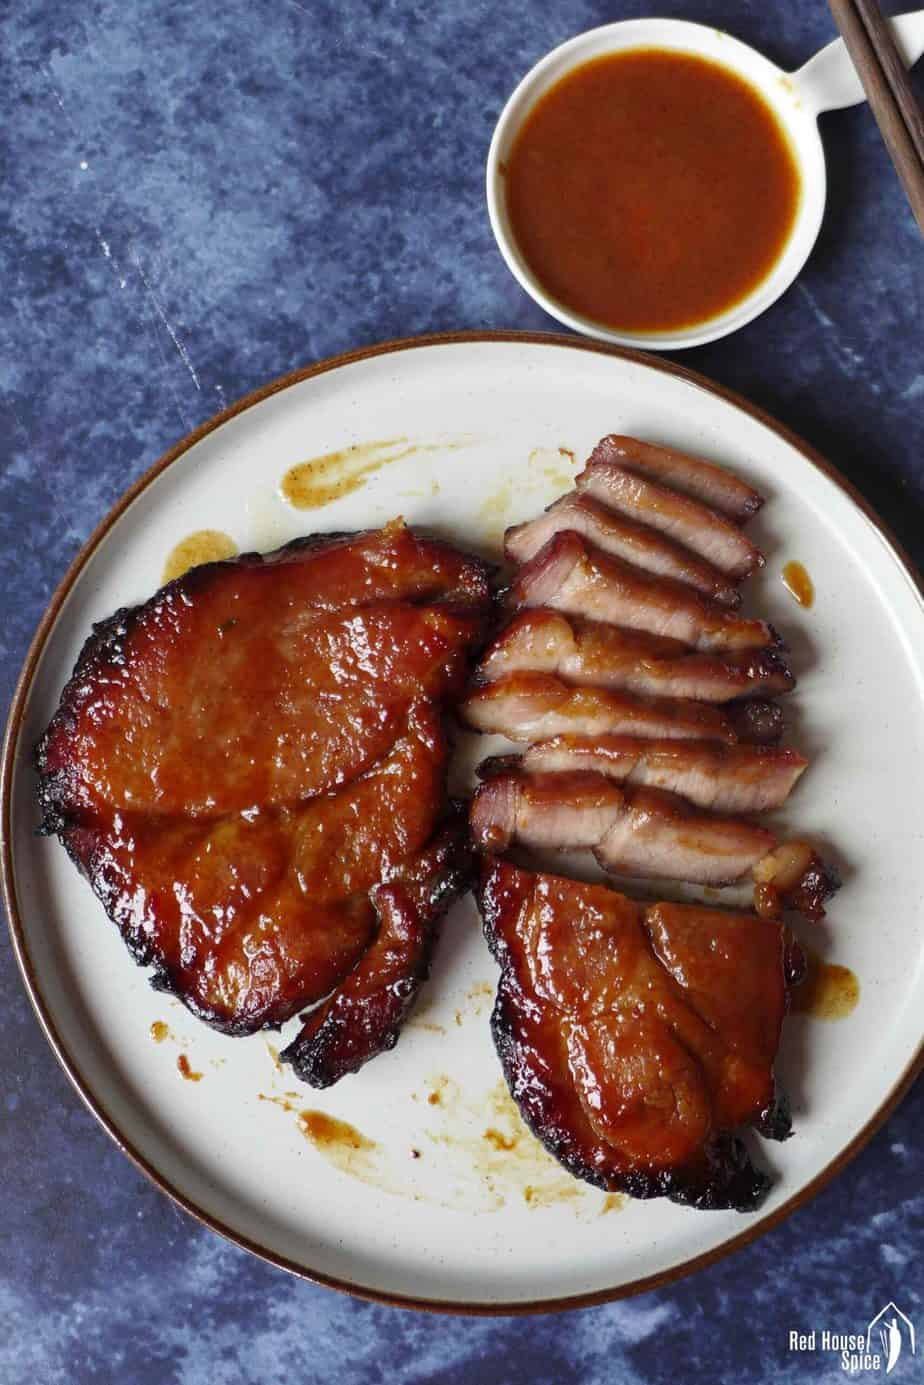 Two pieces of Char Siu, Chinese BBQ pork